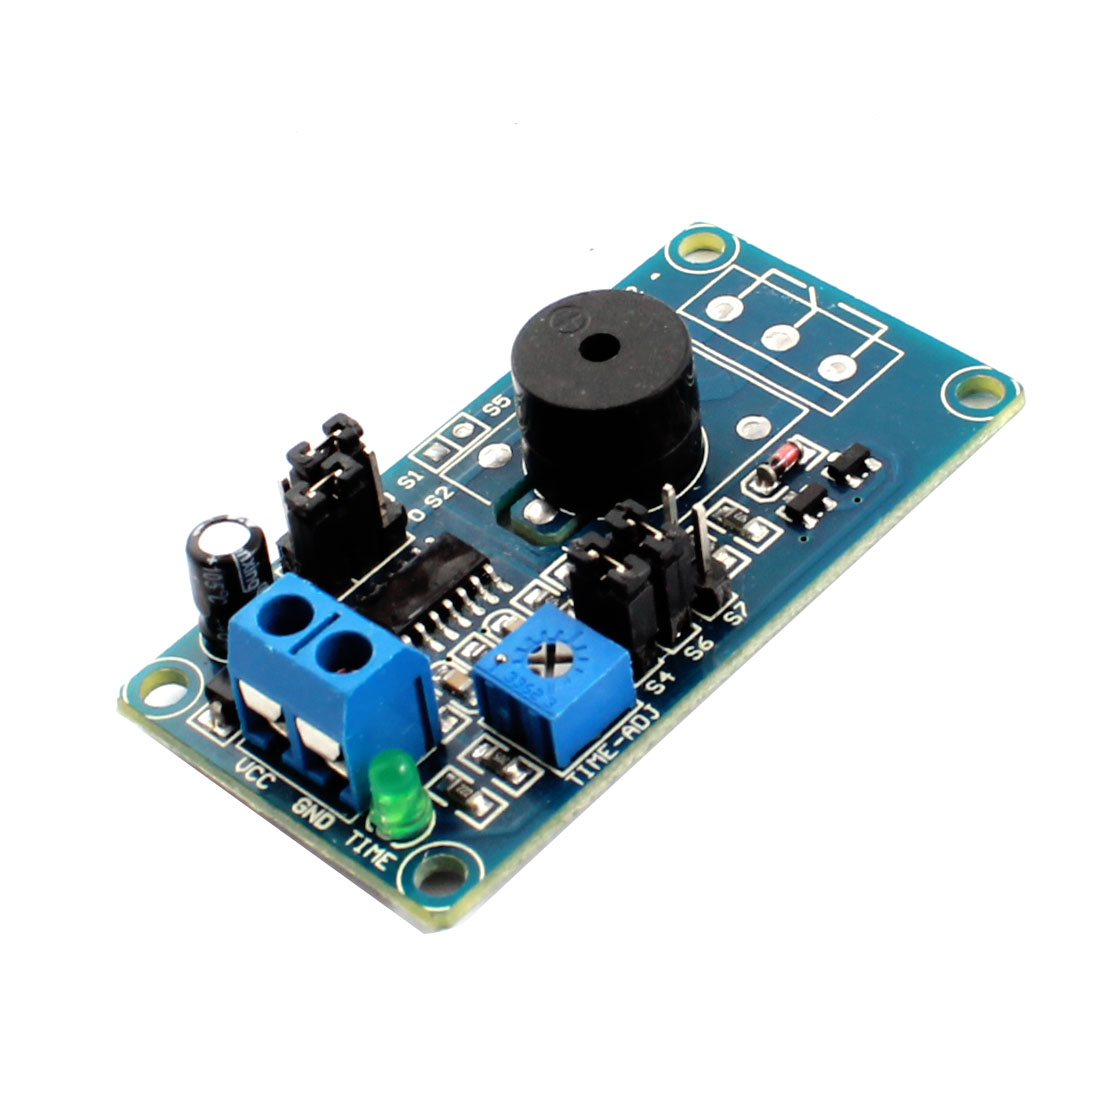 DC 12V 0.13s-3700s Adjustable Time Delay Alarm Device Buzzer Module for DIY Circuit